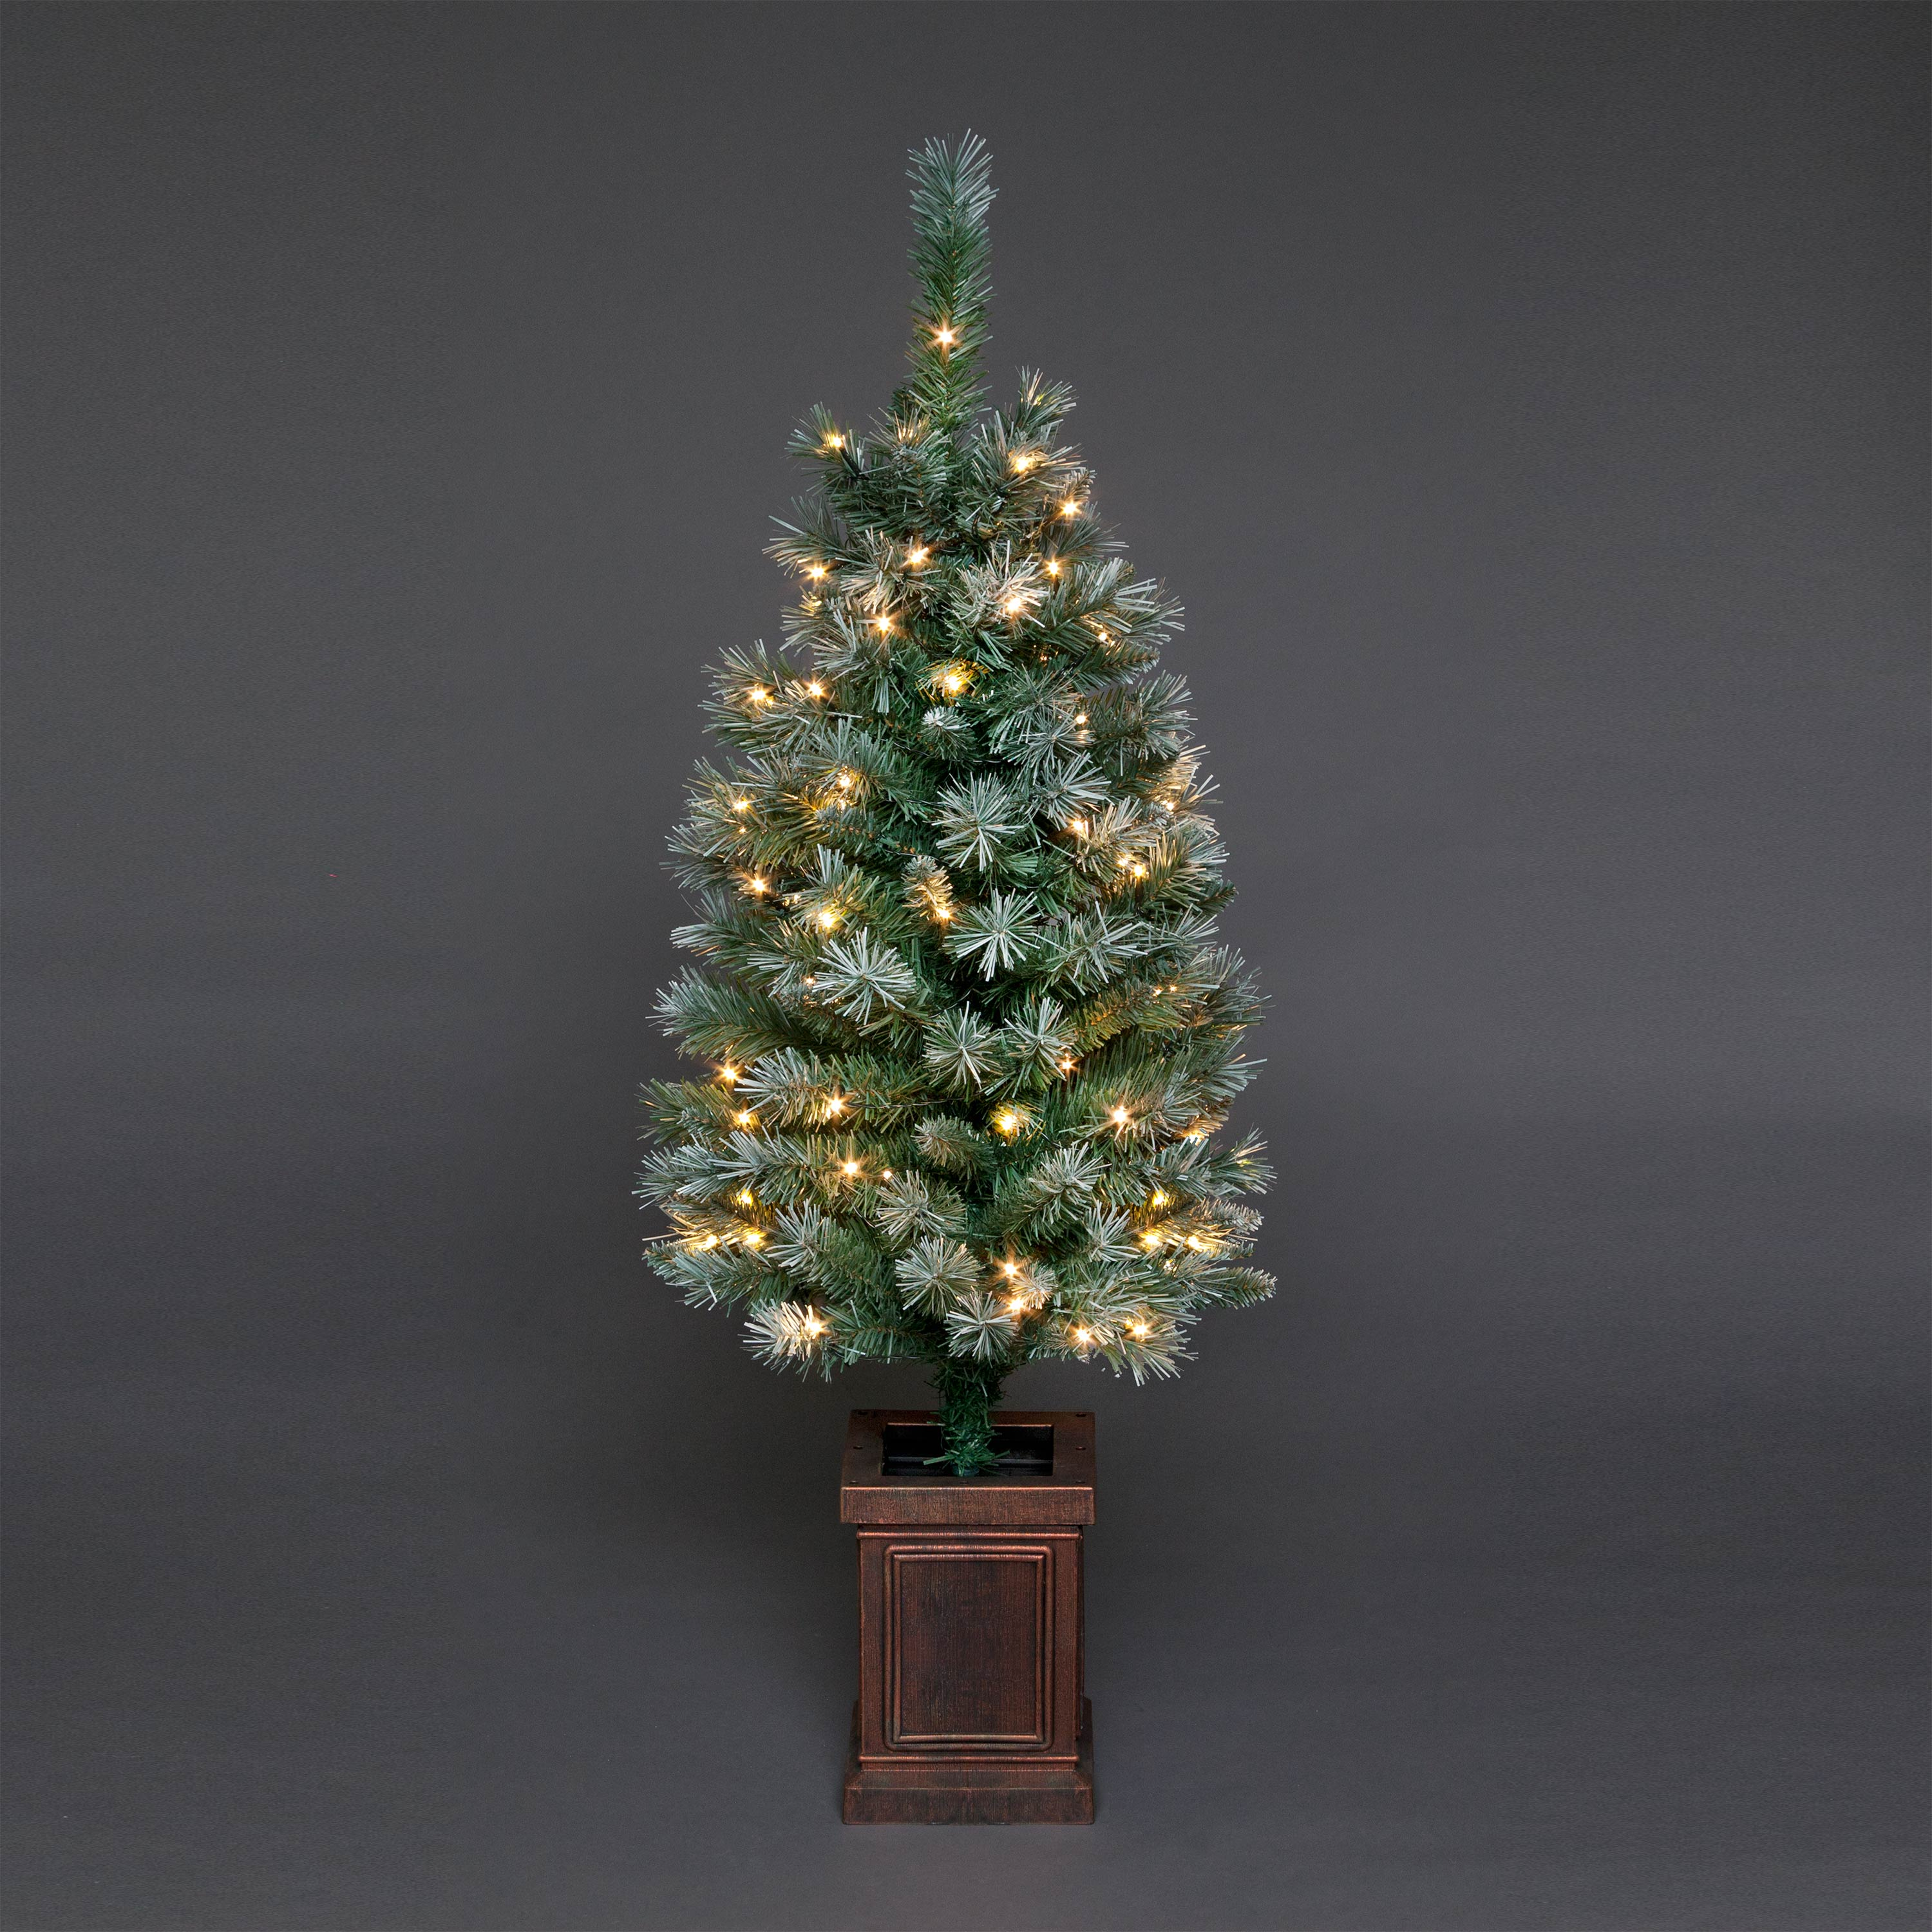 buy cheap prelit christmas tree compare house. Black Bedroom Furniture Sets. Home Design Ideas